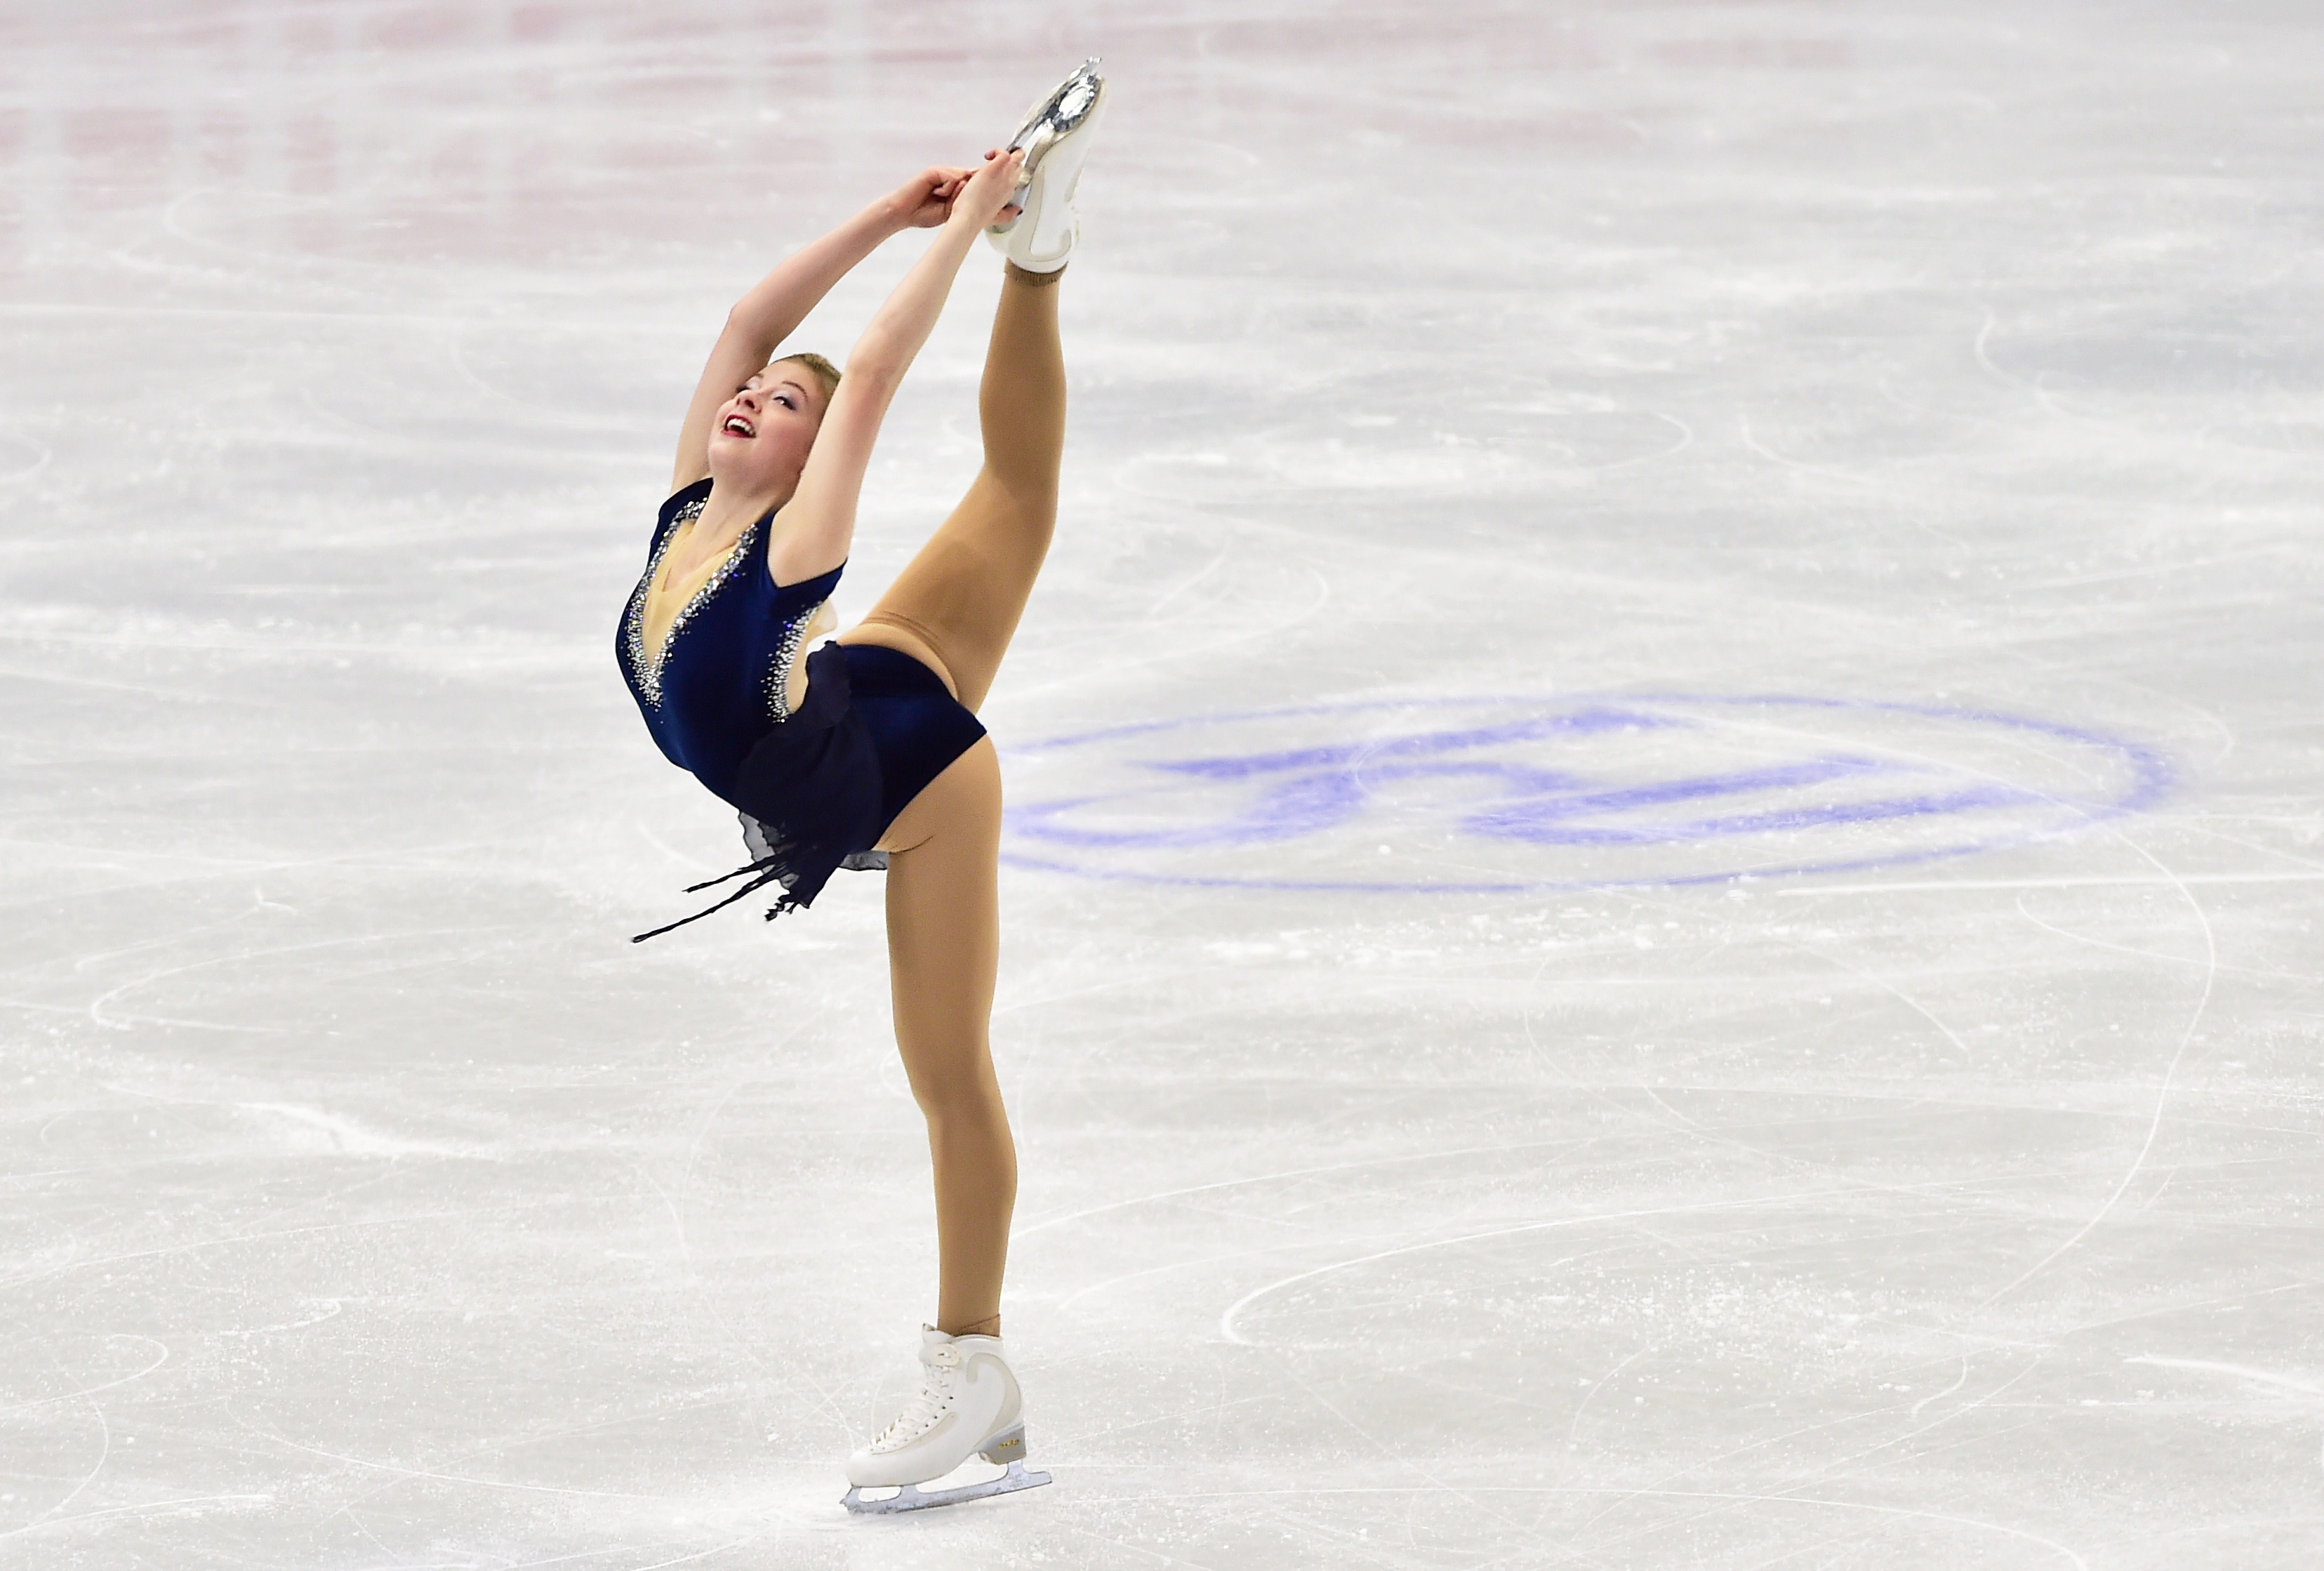 Gracie Gold Performs At The Four Continents Figure Skating Championships In February